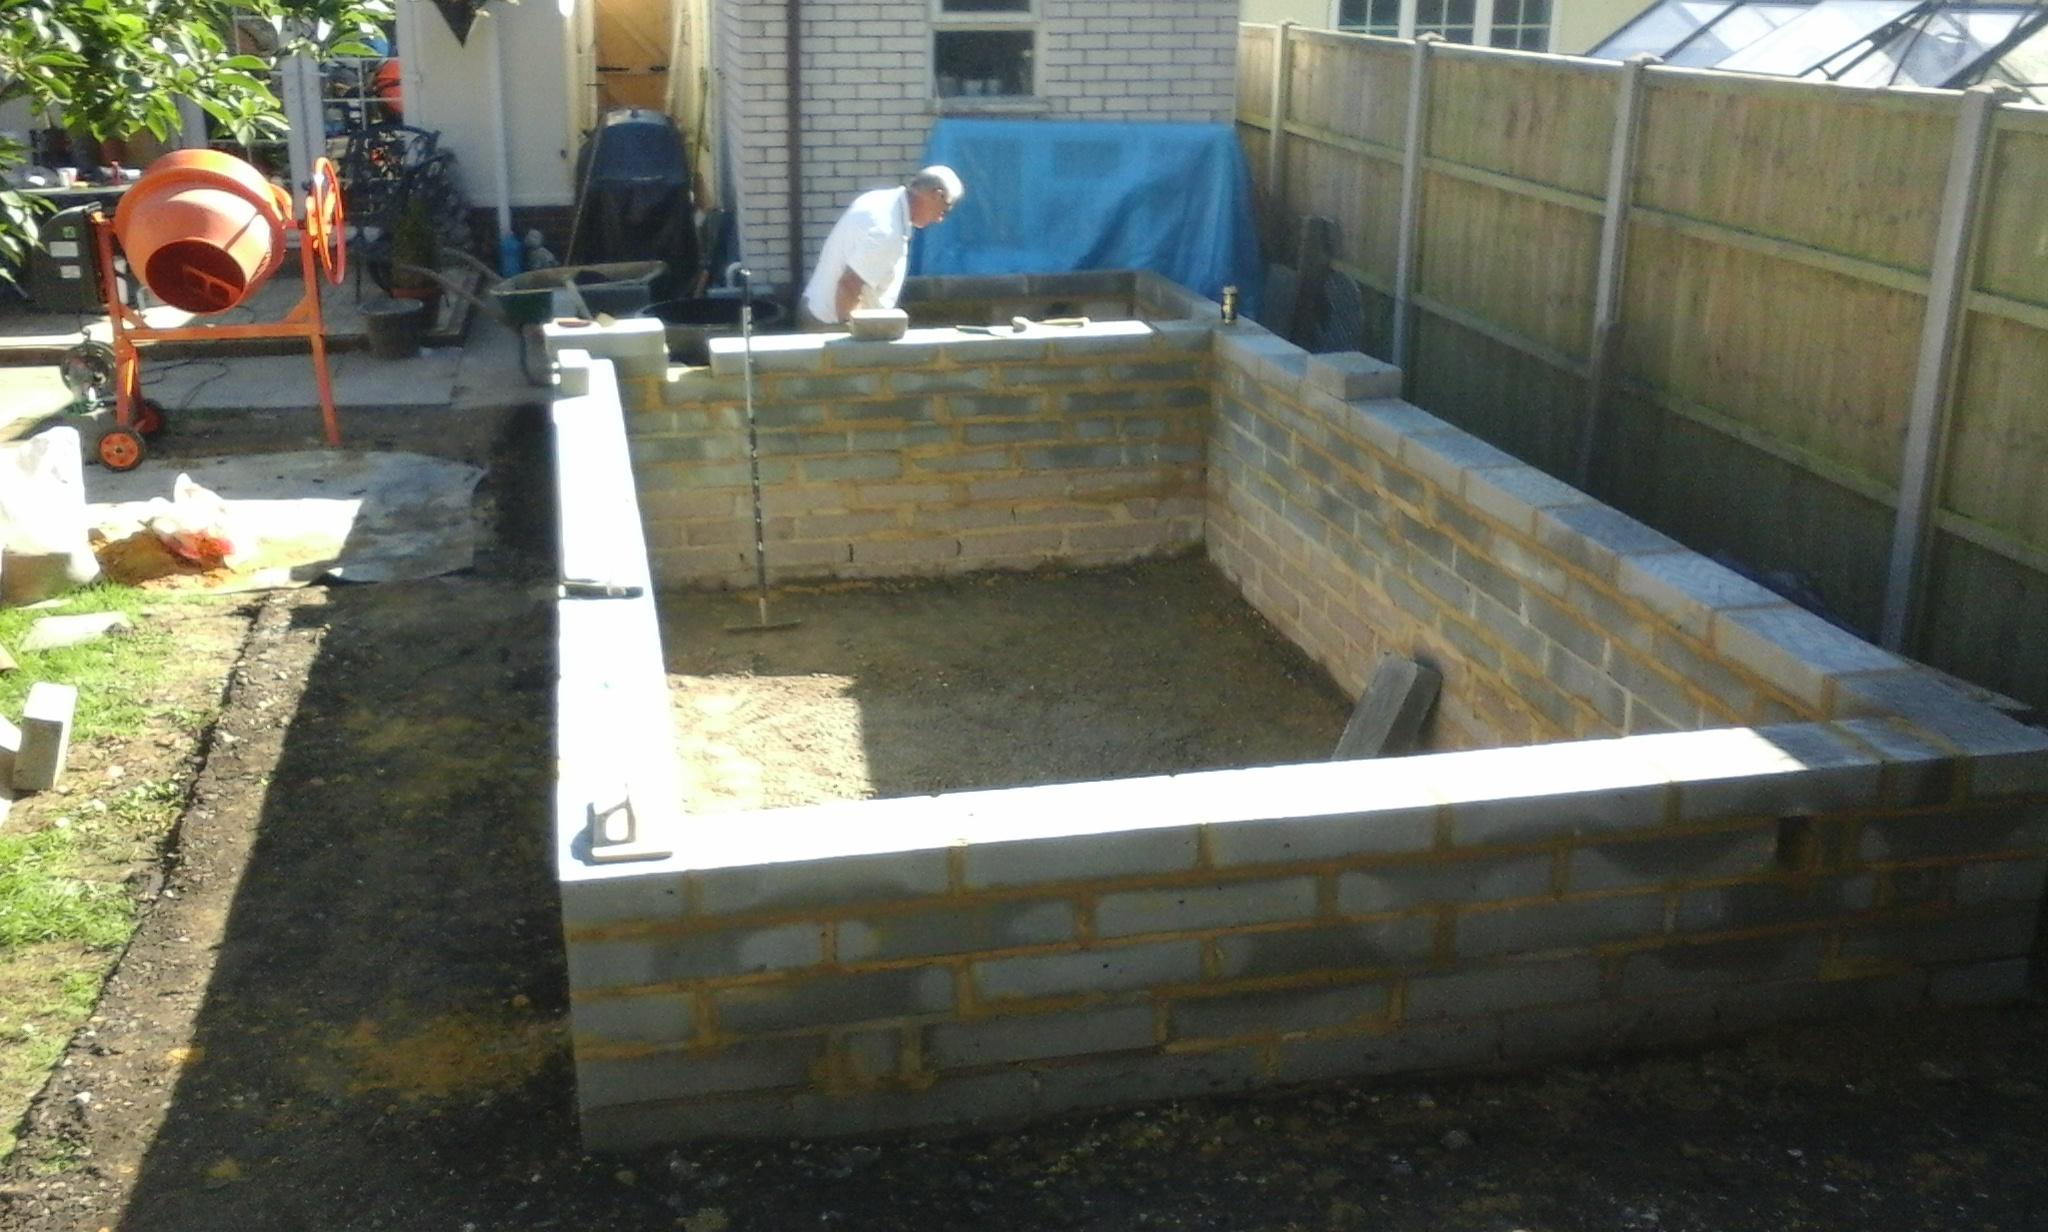 Dorset pond design construction maintenance pond stars uk for Concrete koi pond construction